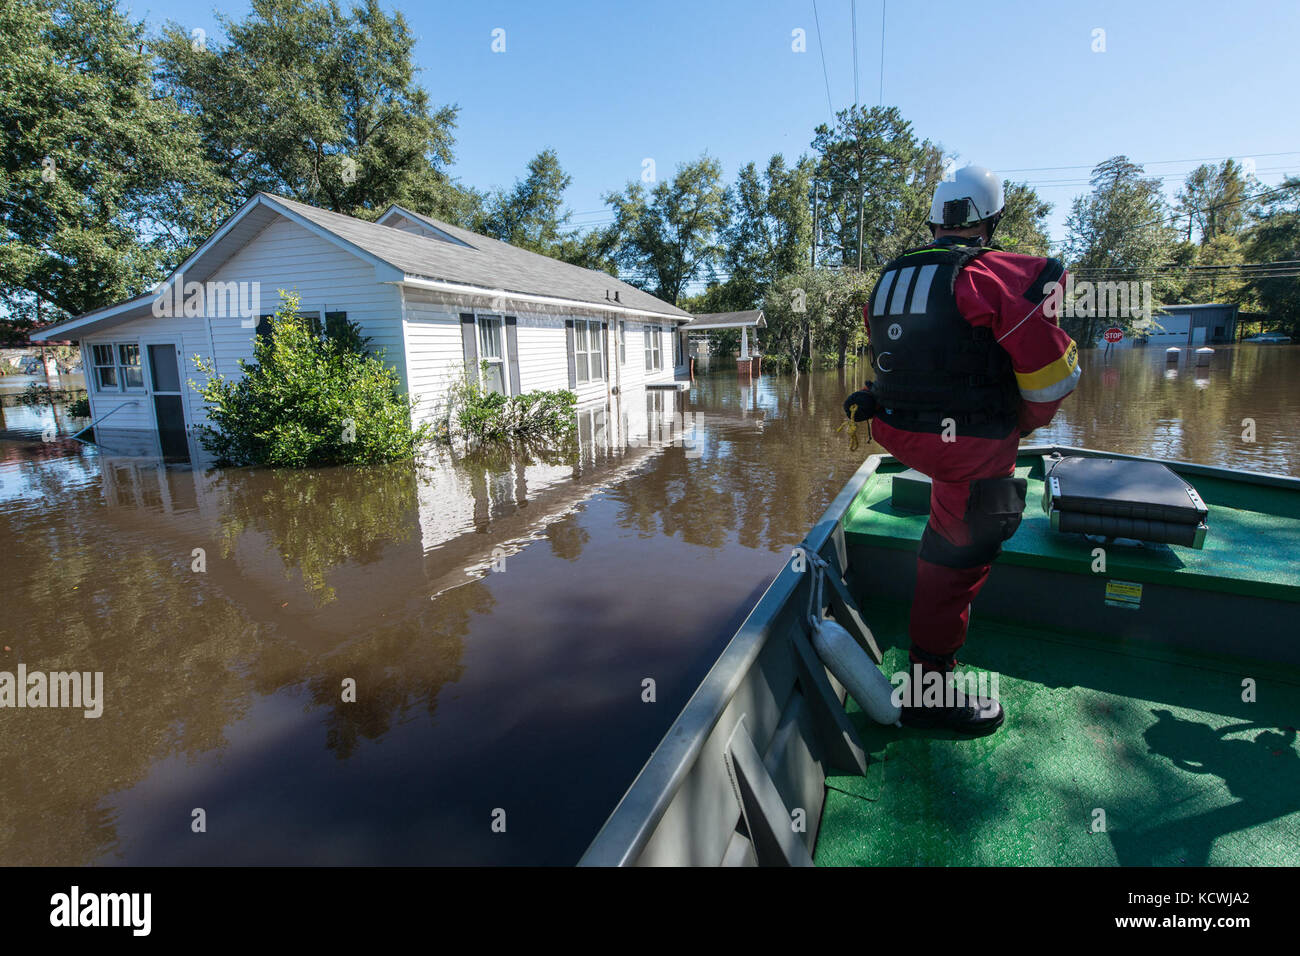 The Flooded town of Nichols S.C., heavy rains caused by Hurricane Matthew flooded the town which caused the evacuation - Stock Image